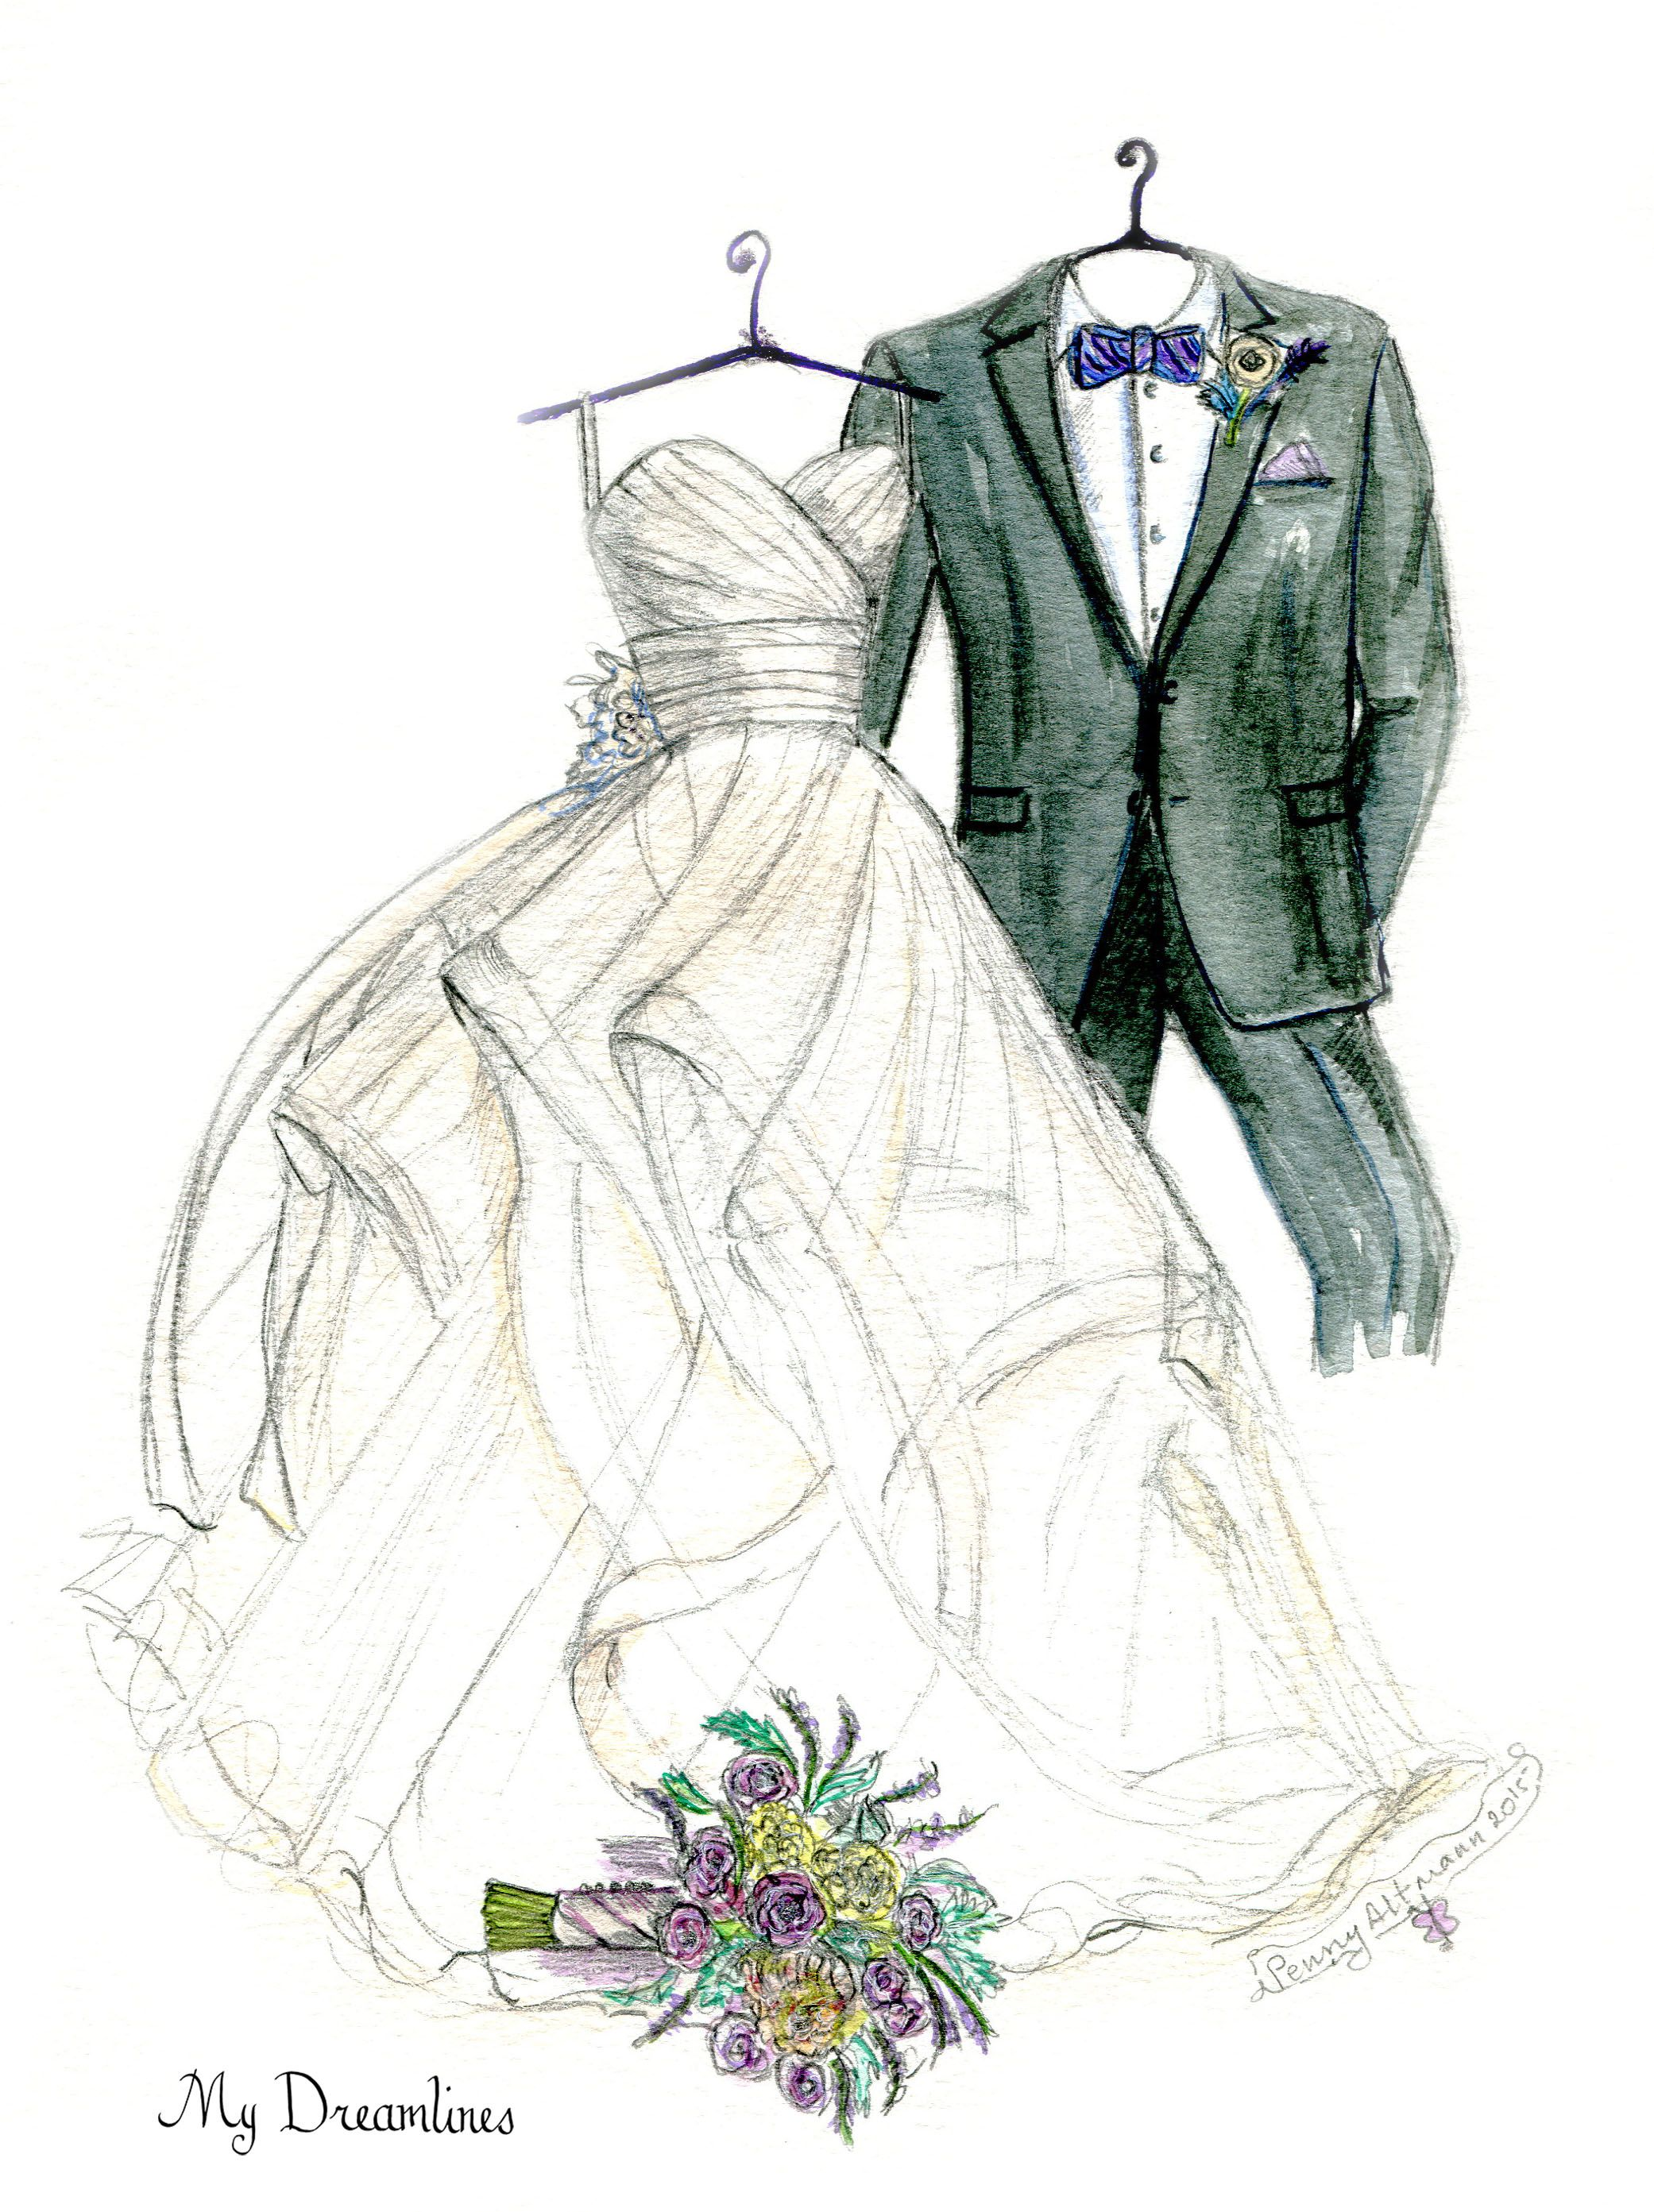 Dreamlines Wedding Dress Sketch Given As A Gift Anniversary And Valentines Day